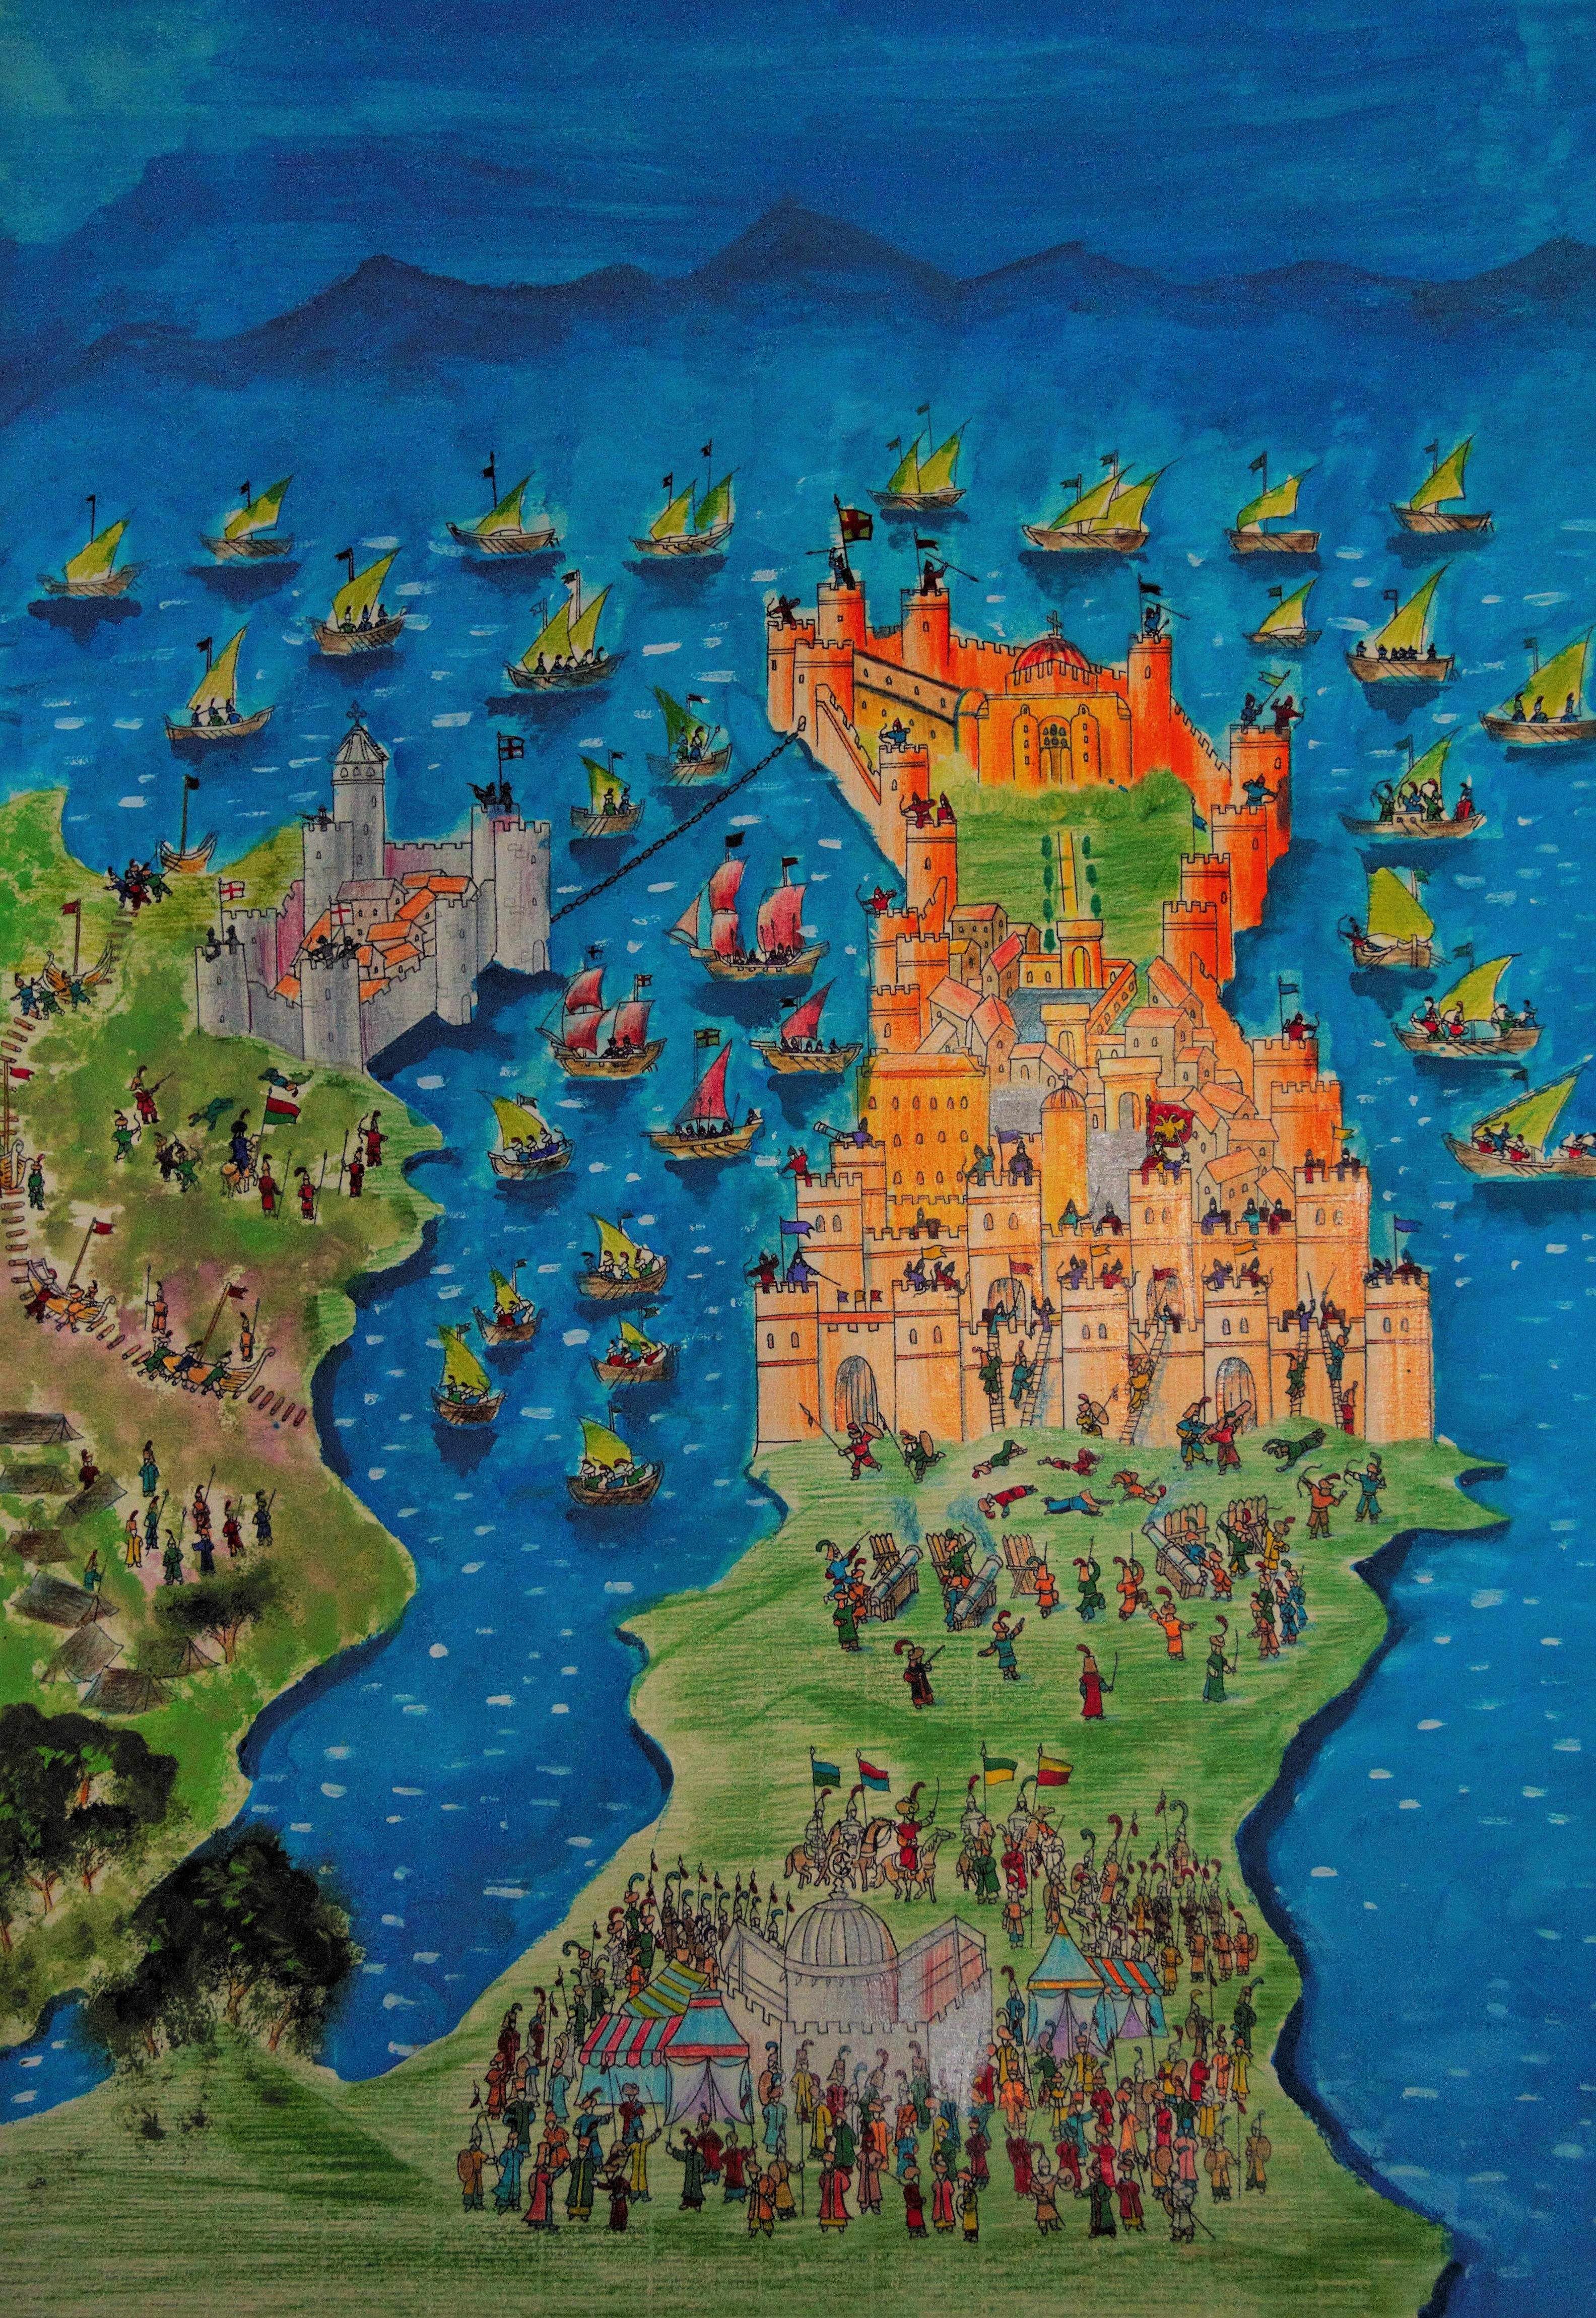 siege_of_constantinople_1453_by_faisalhashemi_d7b6l6a